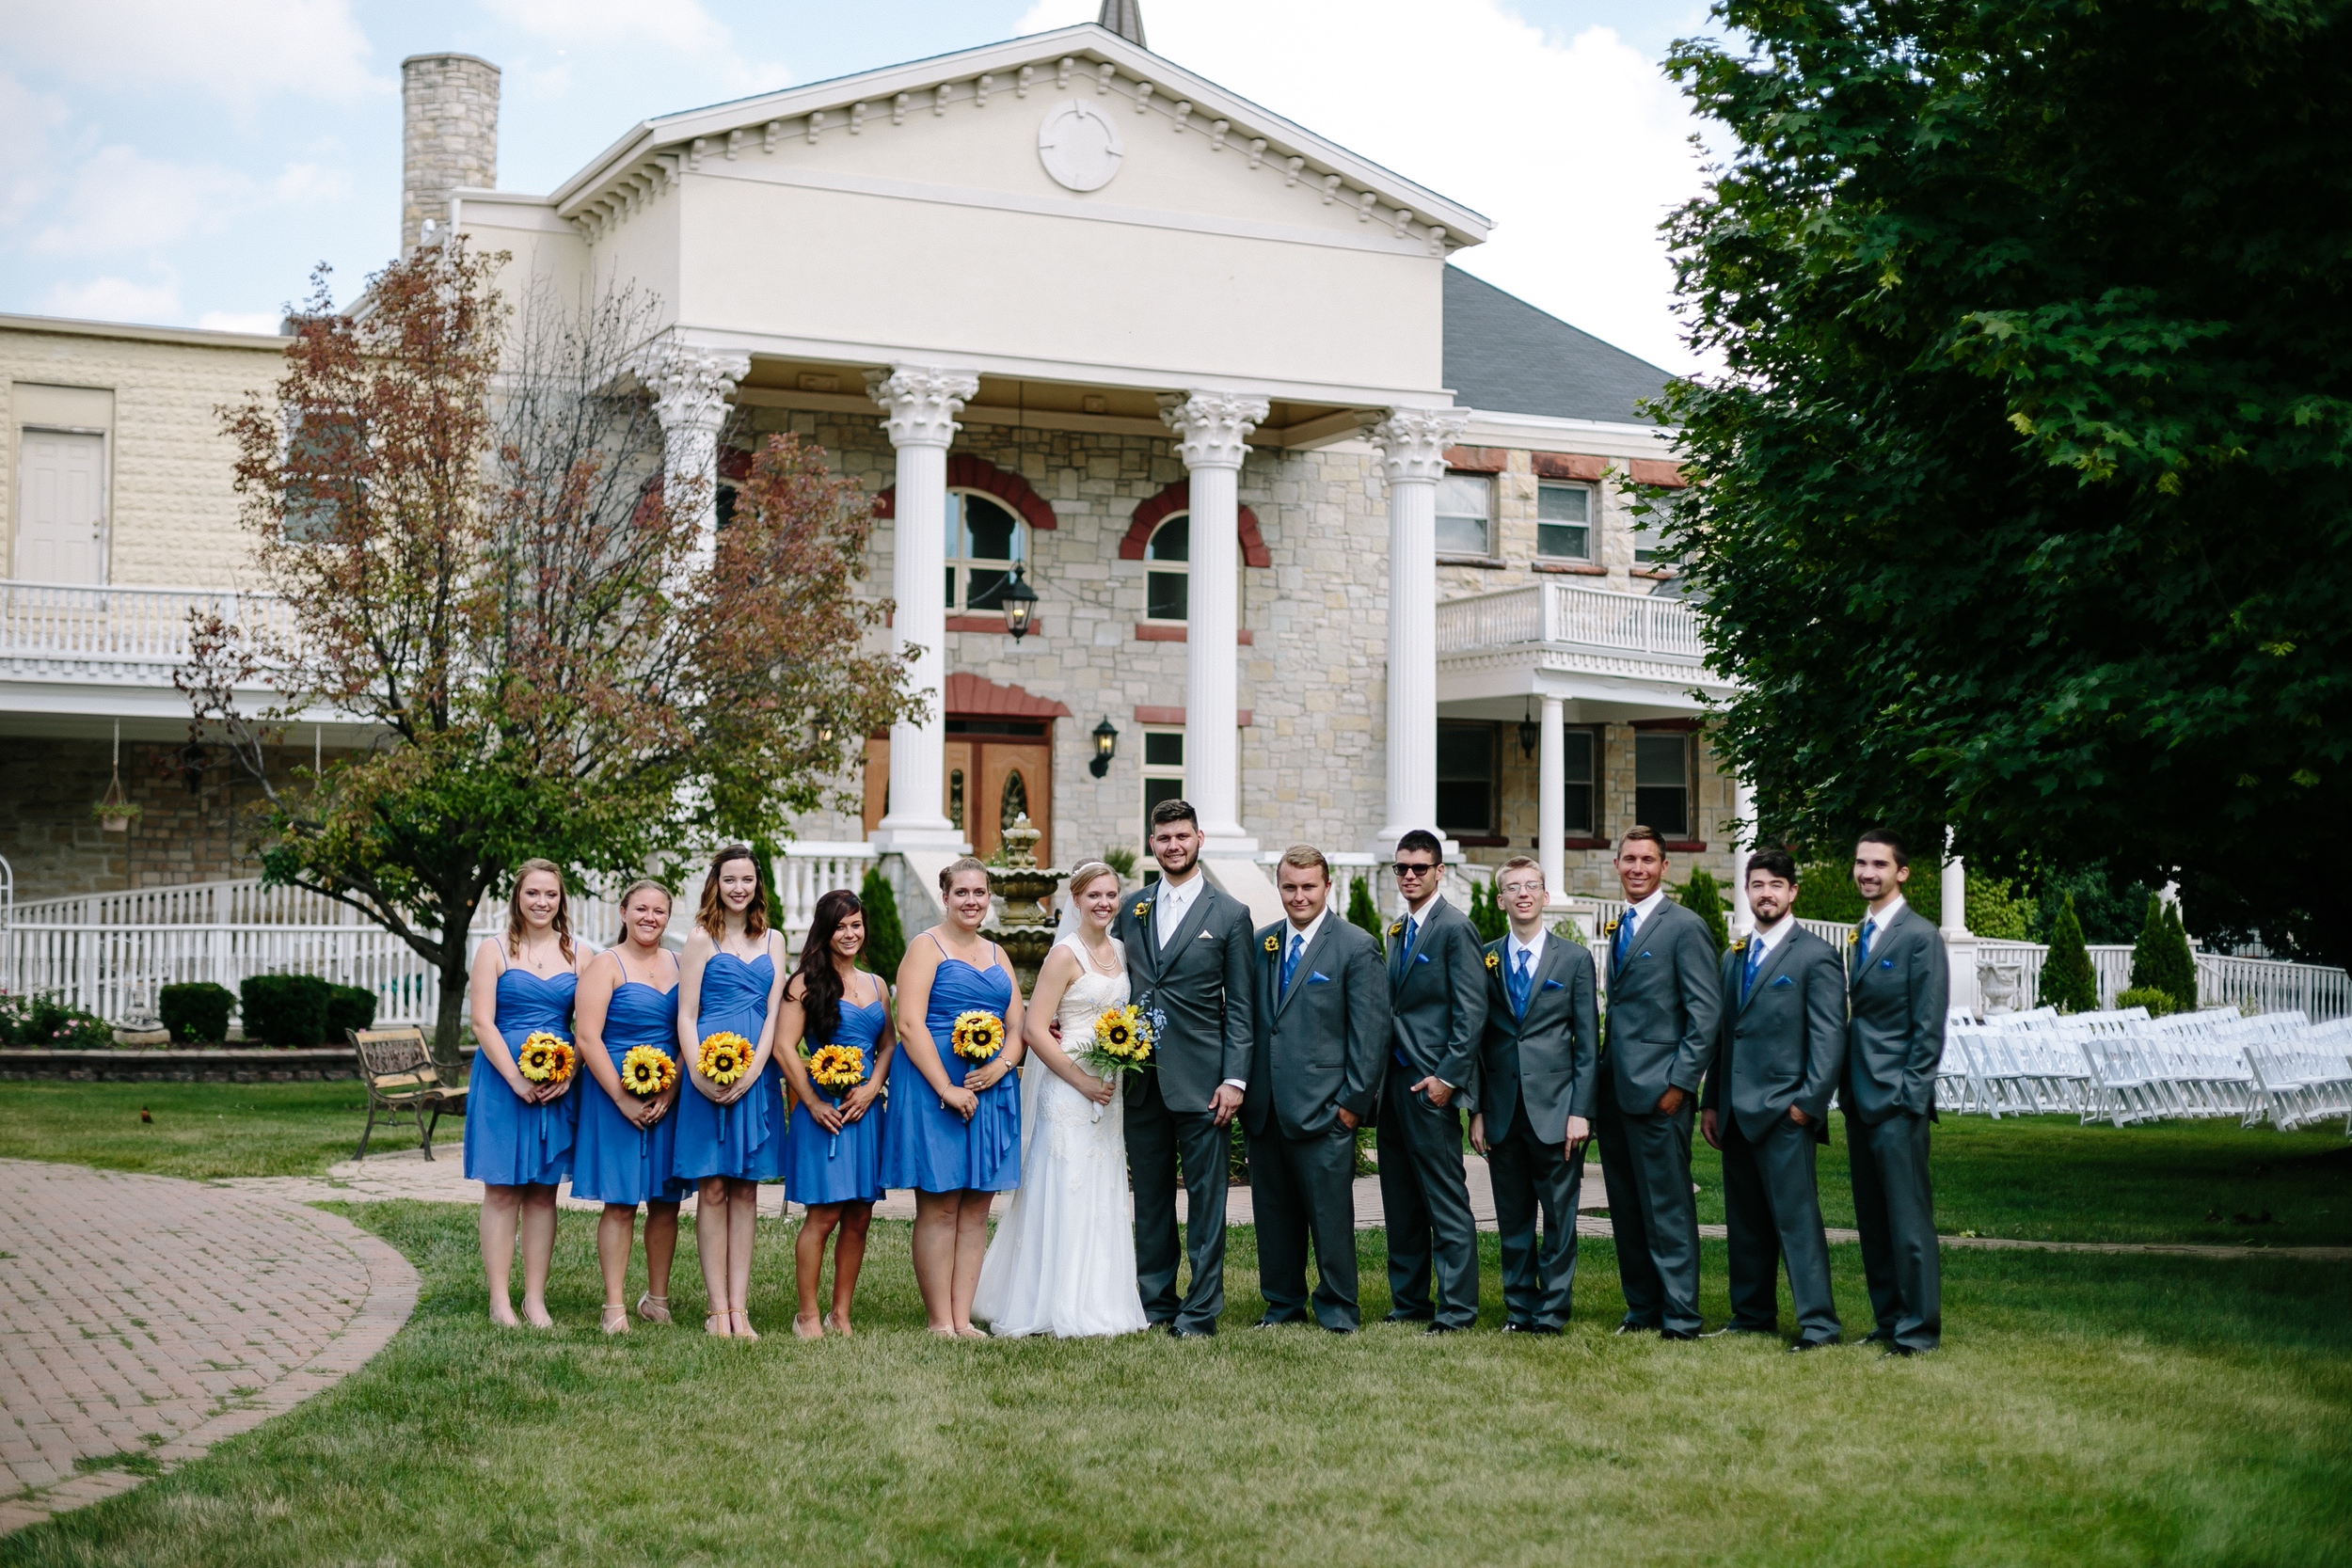 Jacob Henry Mansion Estate Joliet, Illinois - Wayne & Leanne Married - Corrie Mick Photography-165.jpg